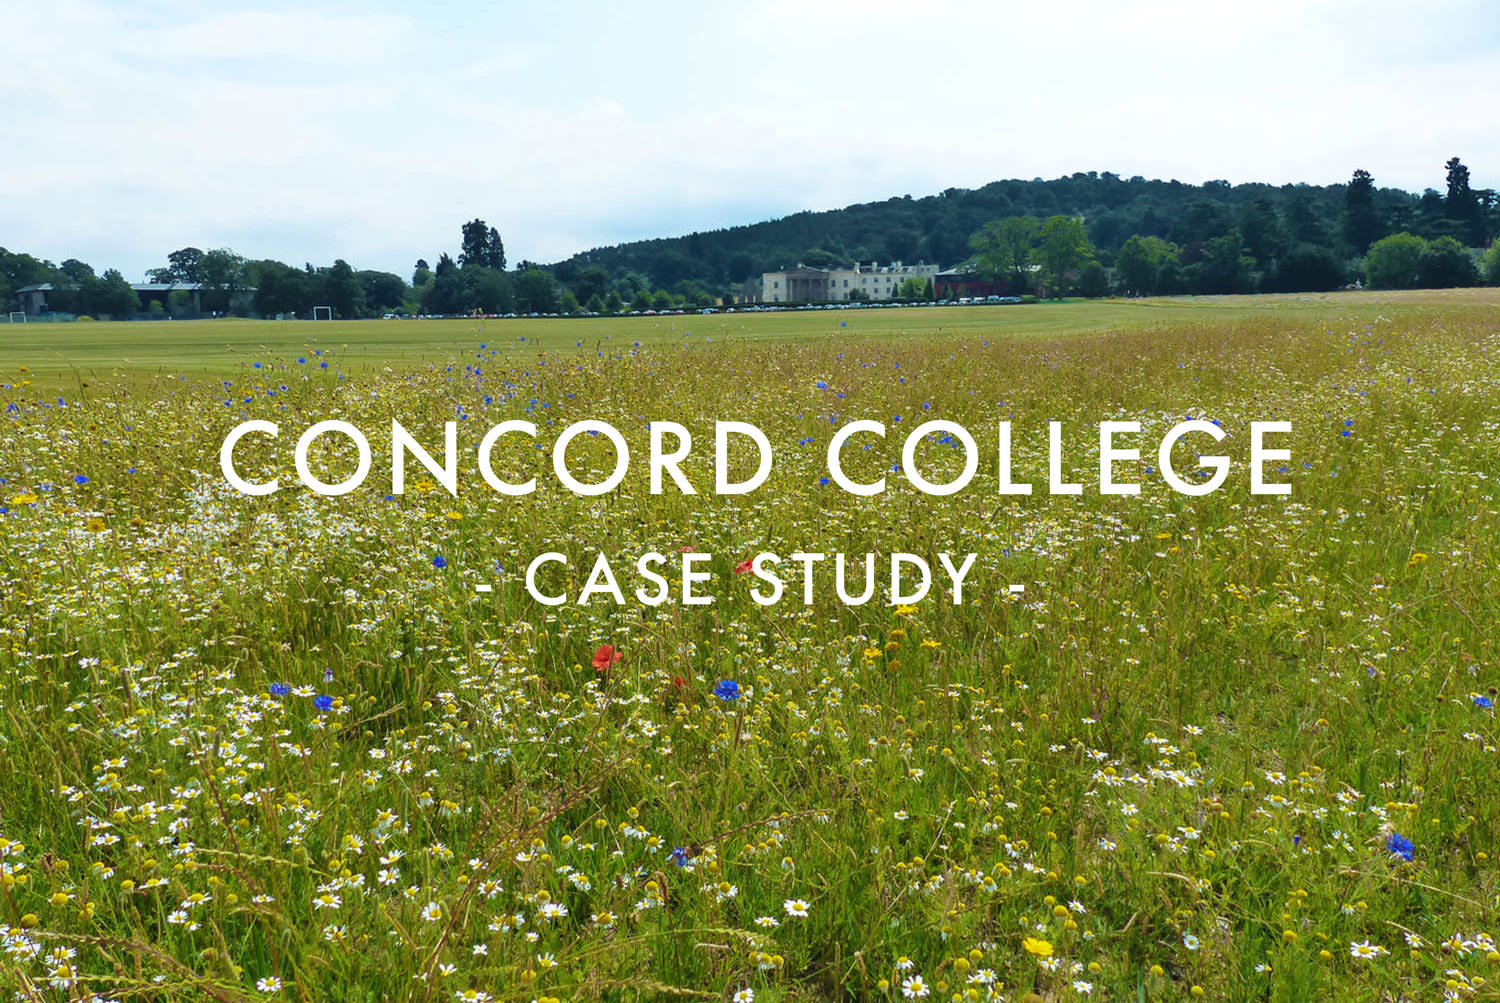 Concord College - Sports Pitch & Amenity Turf Design & Construction Case Study